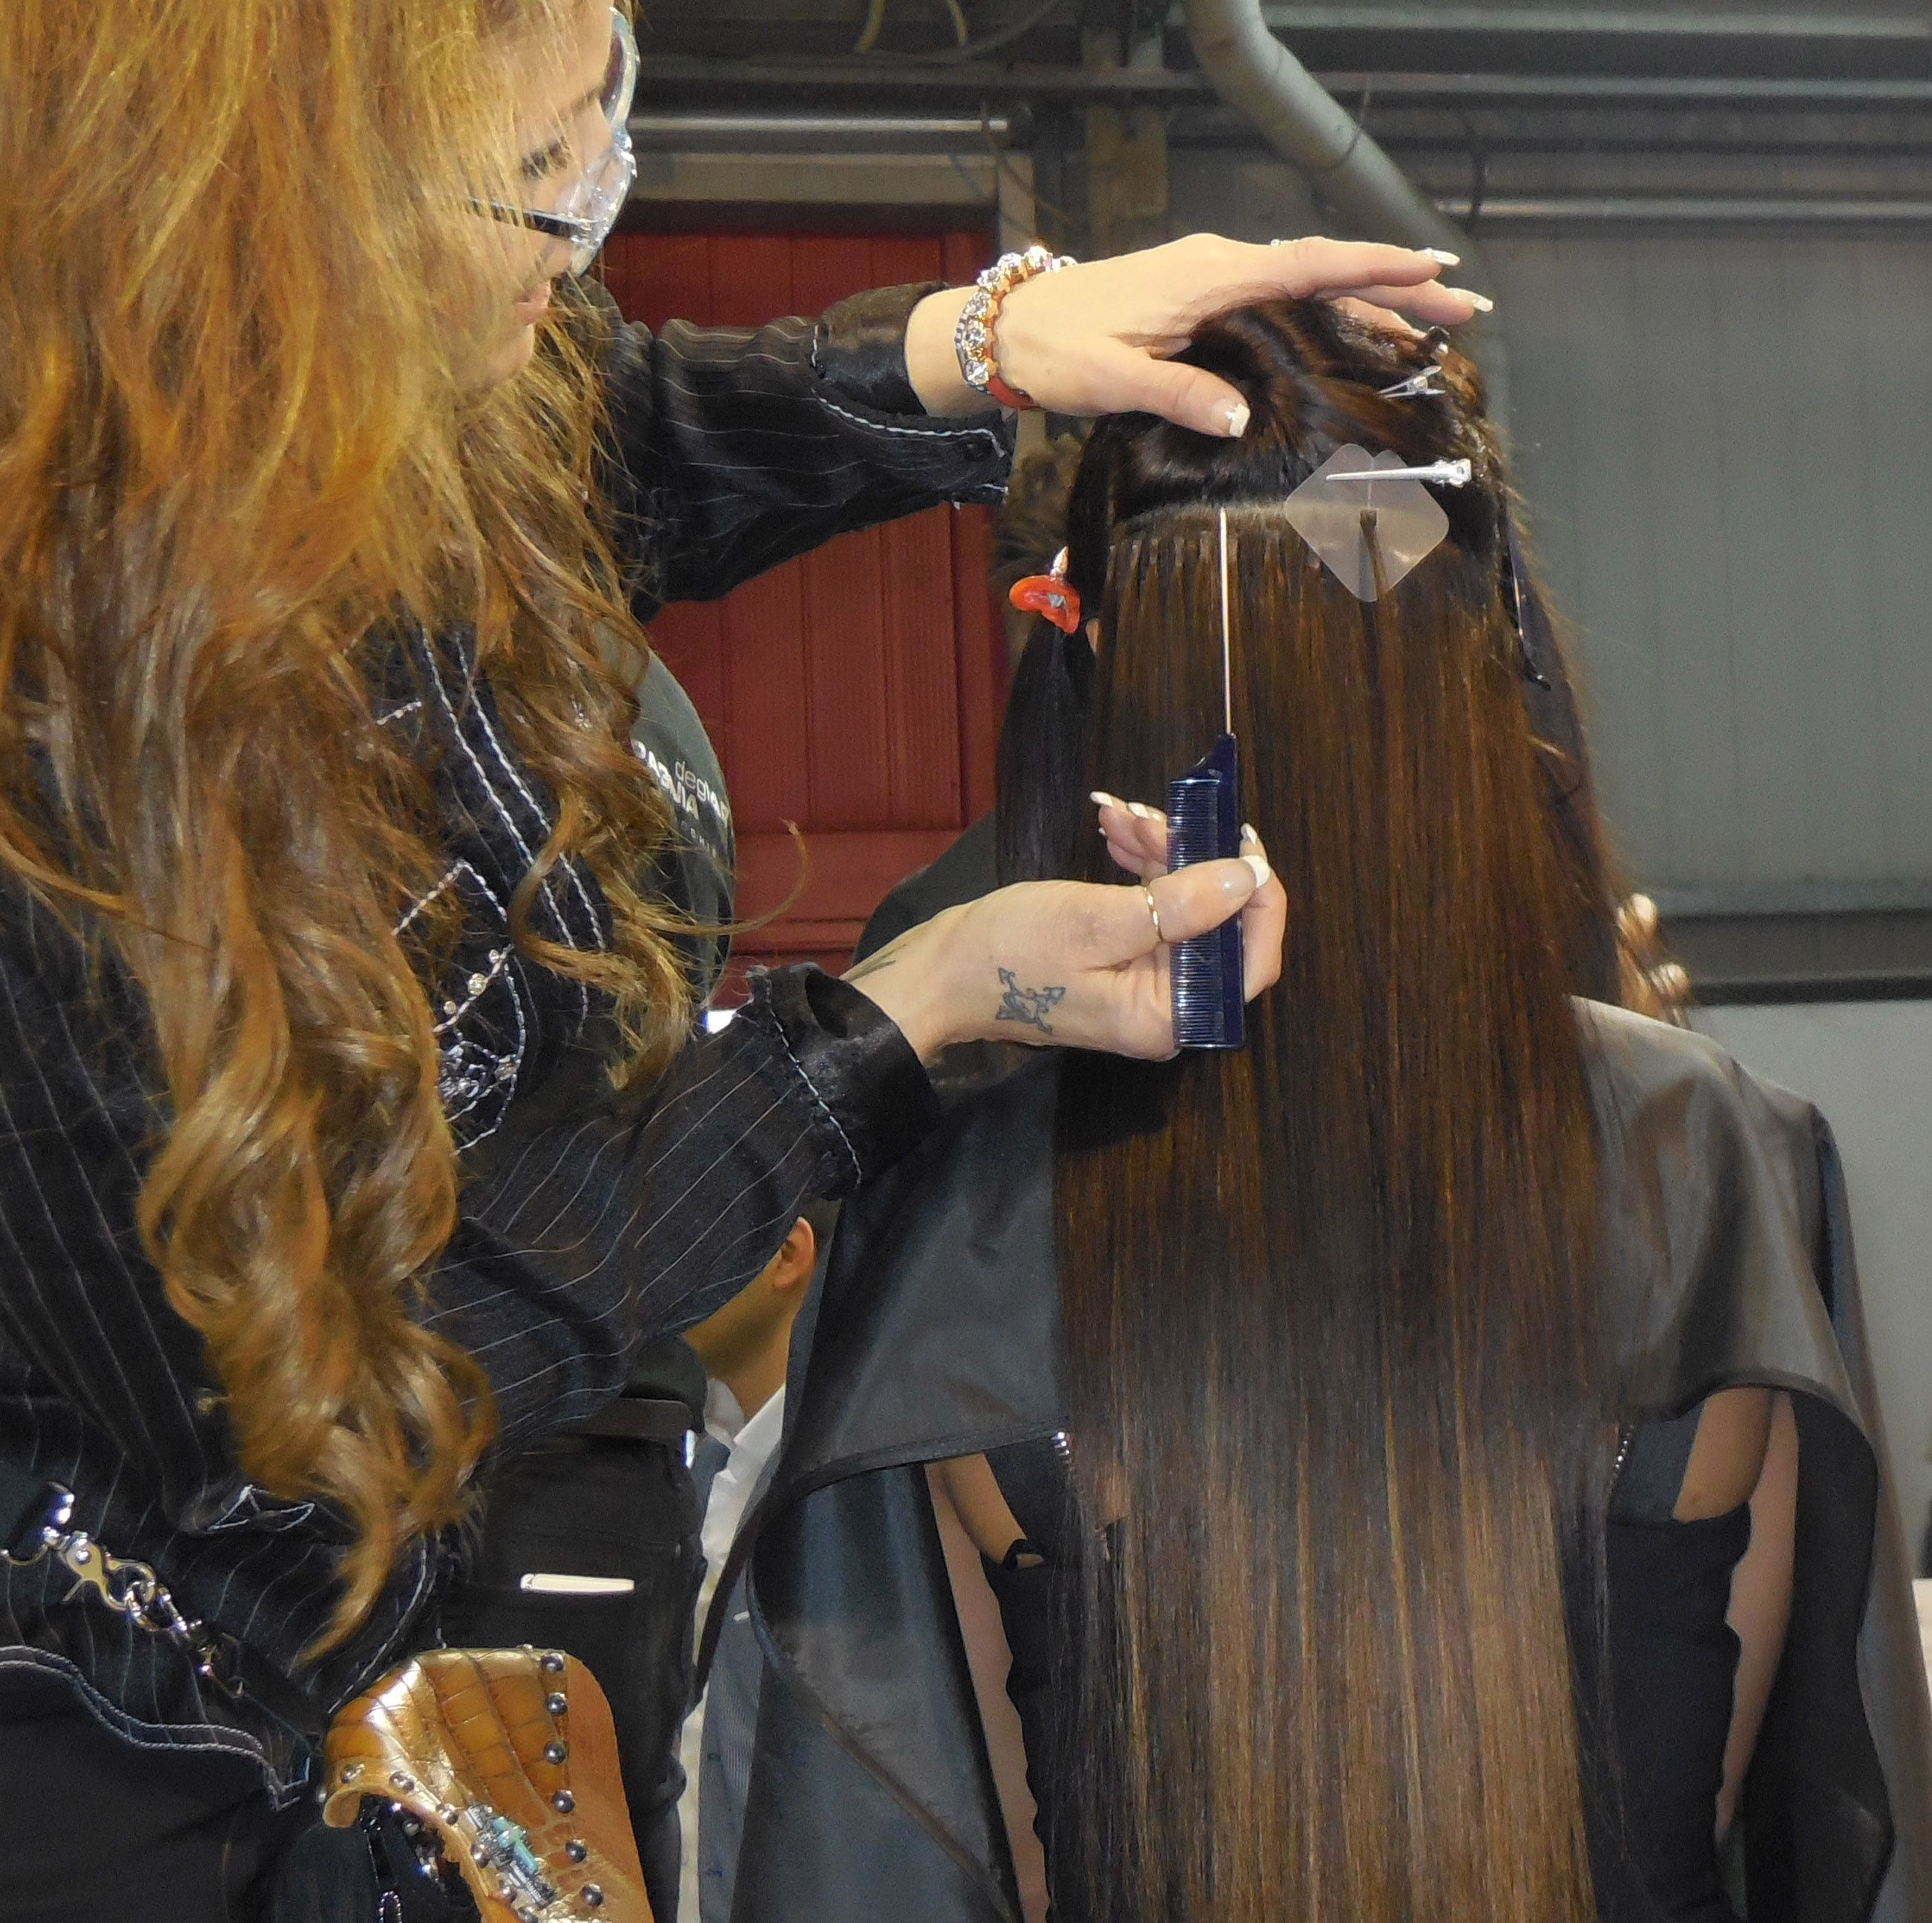 Vikki Parman Of Di Biase Hair Extensions Usa Demonstrates Proper